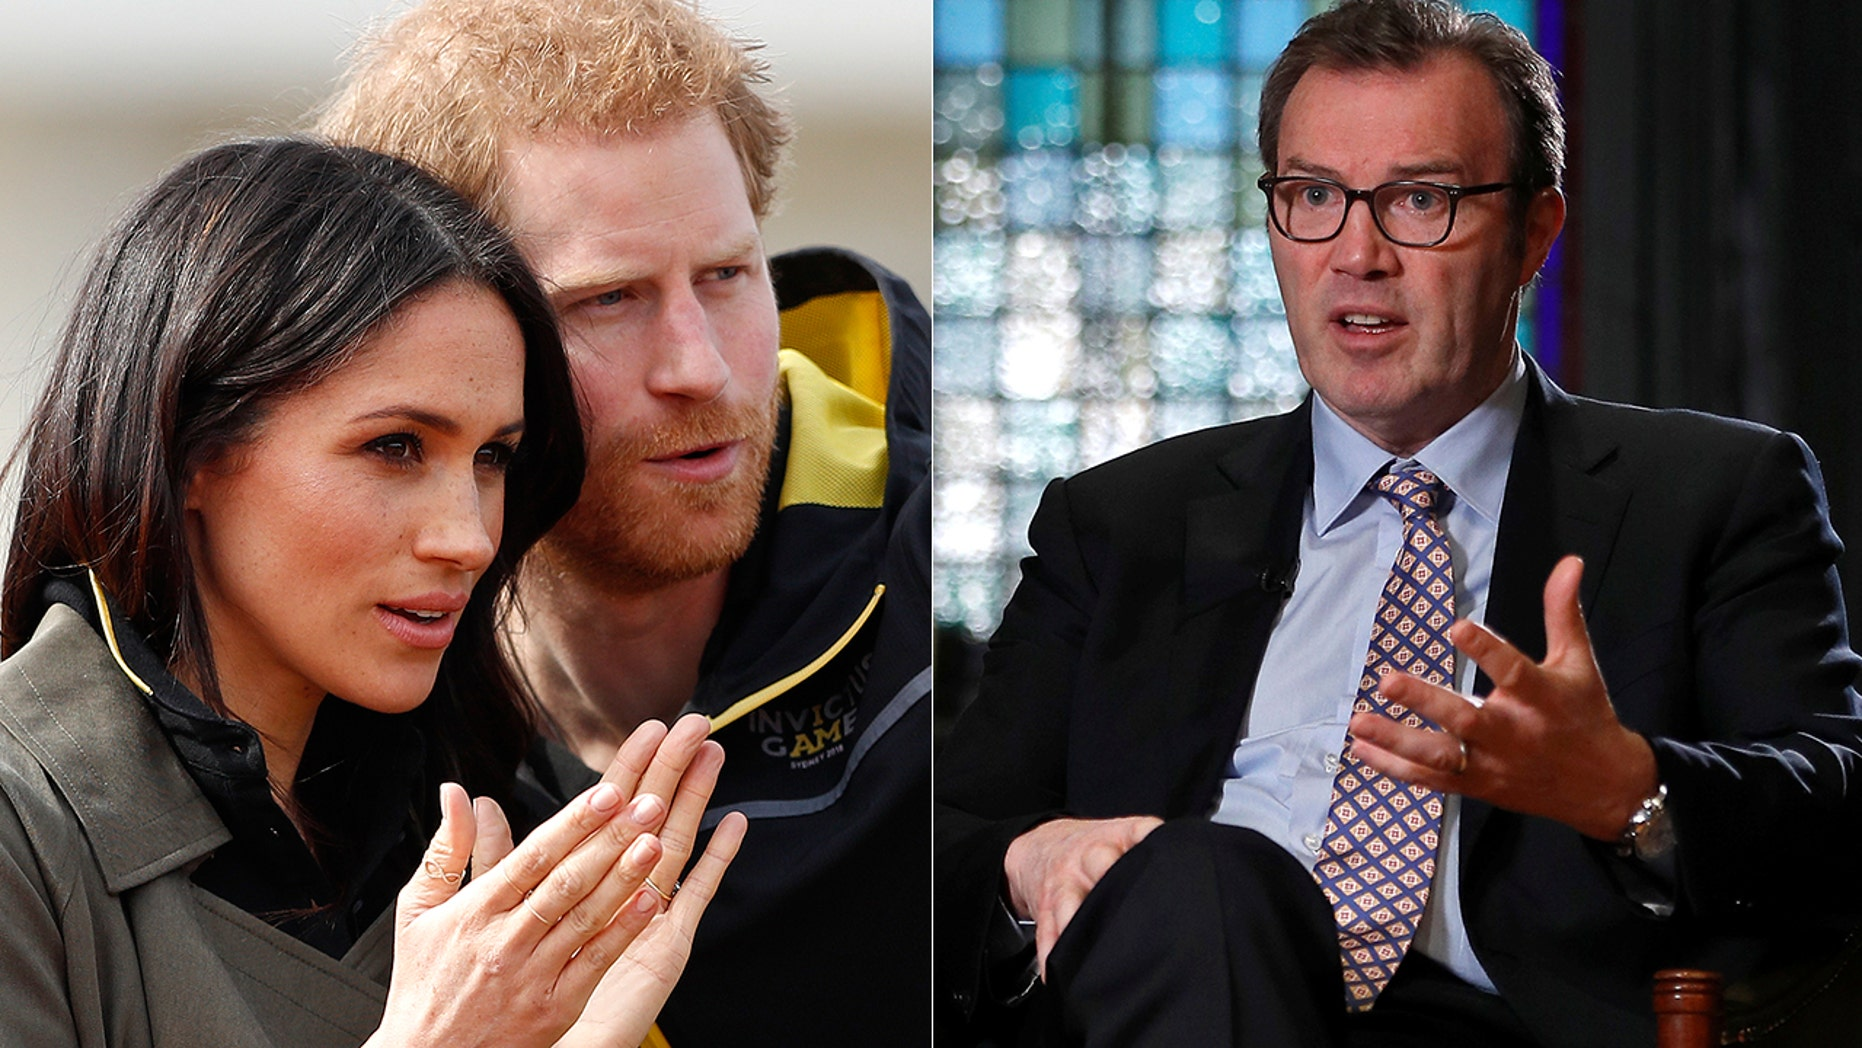 Princess Diana's biographer Andrew Morton, right, says Prince Harry's upcoming wedding to Meghan Markle is helping the image of the royal family.